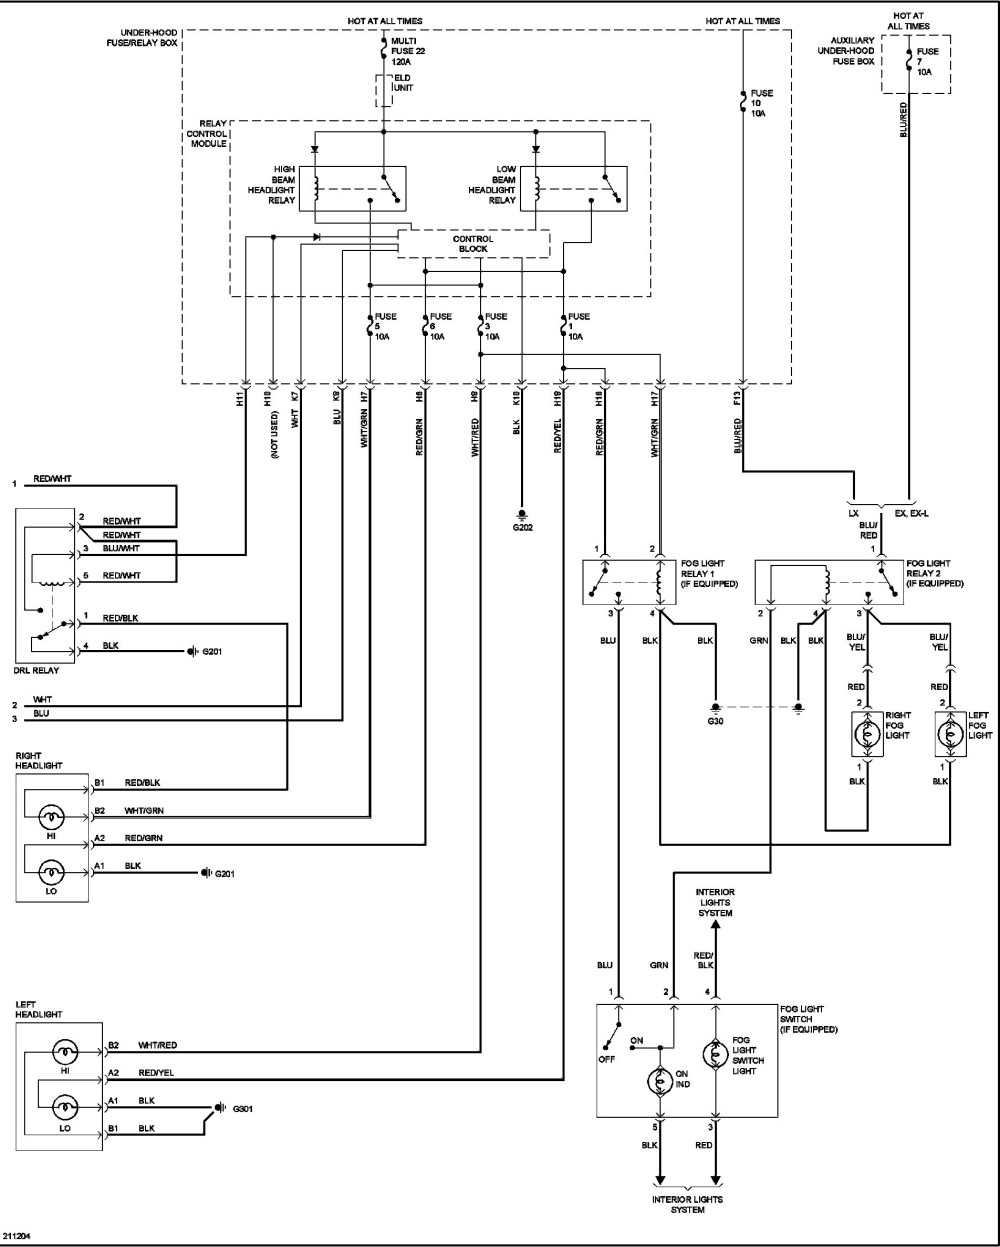 medium resolution of 2000 honda engine diagram wiring diagram mega honda engine wiring diagram gx270 2000 civic engine diagram